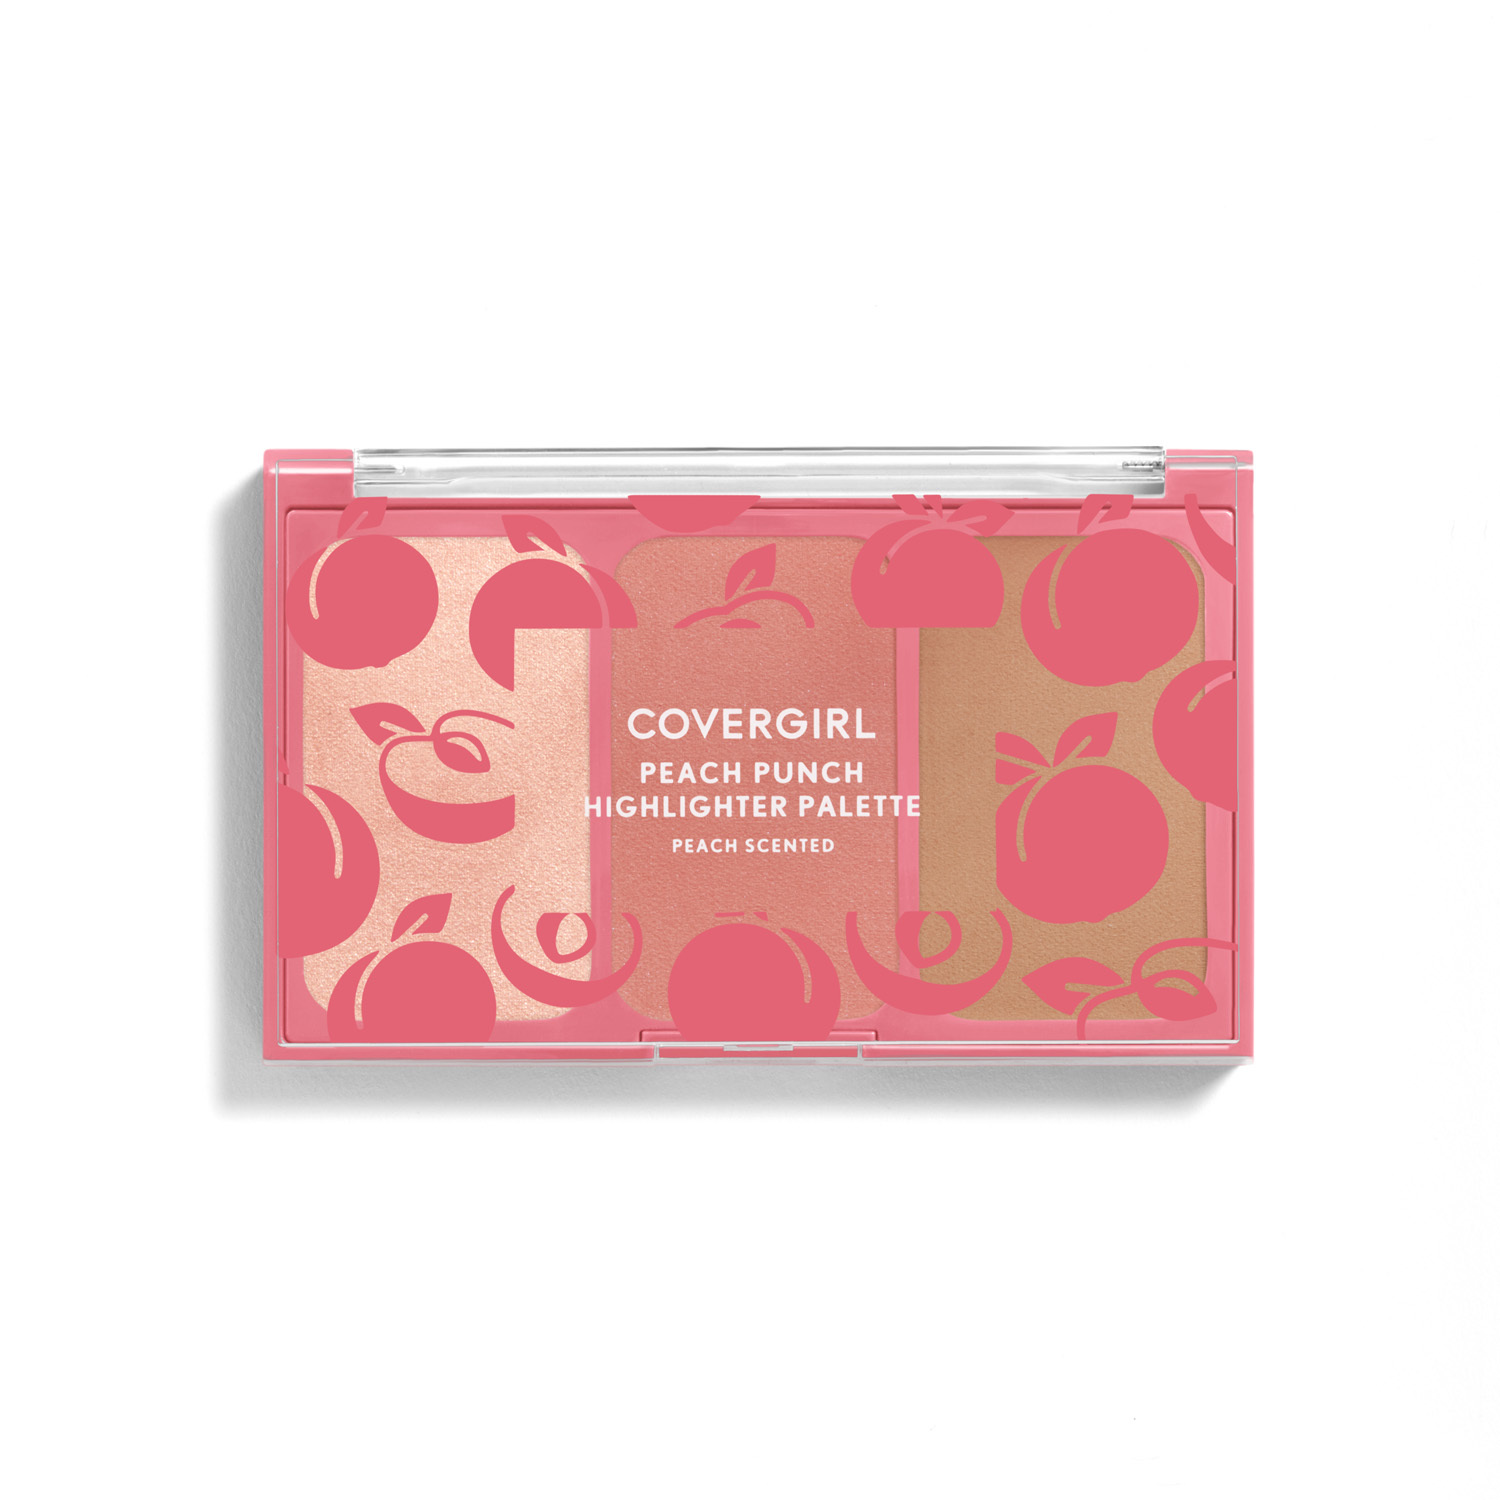 COVERGIRL Peach Punch Highlighter Palette